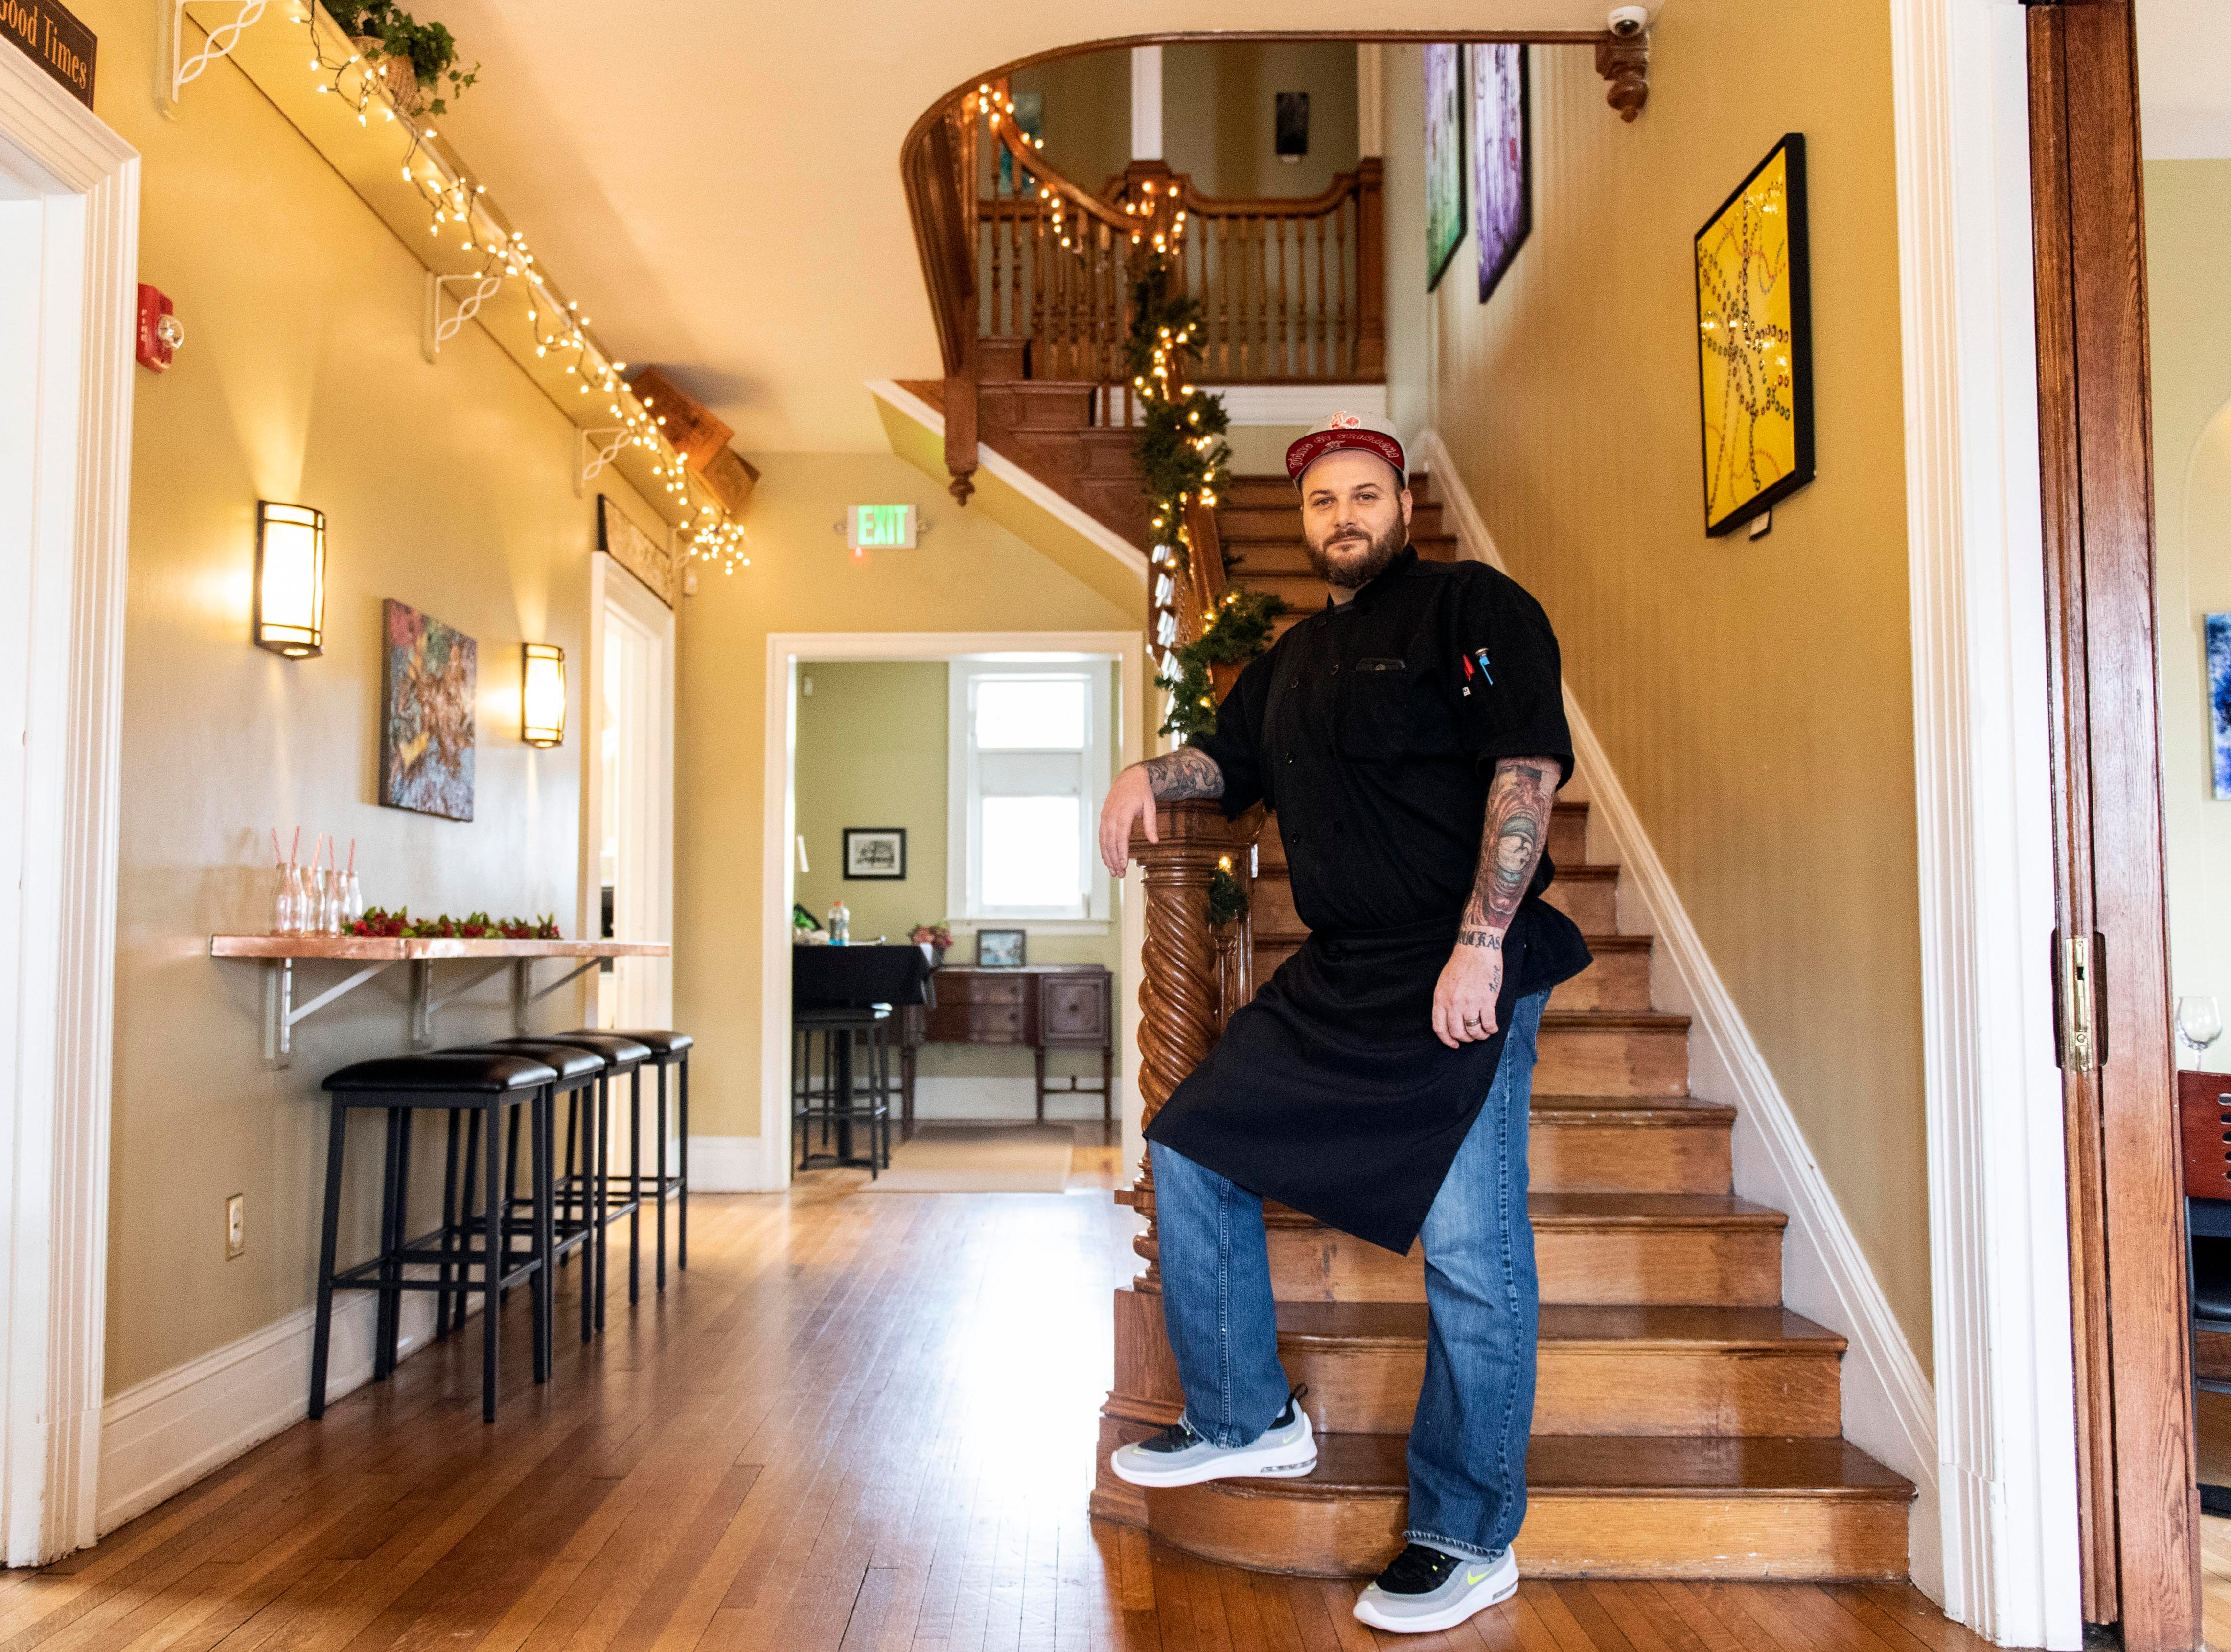 Micheal McMonigle, owner and executive chef of HomeGrown Catering, poses for a portrait in the restaurant, Thursday, Jan. 3, 2019. The restaurant, which inhabits the historic Frey Mansion, is set to open Jan. 10, offering customers an American-style menu with a French twist, McMonigle says.